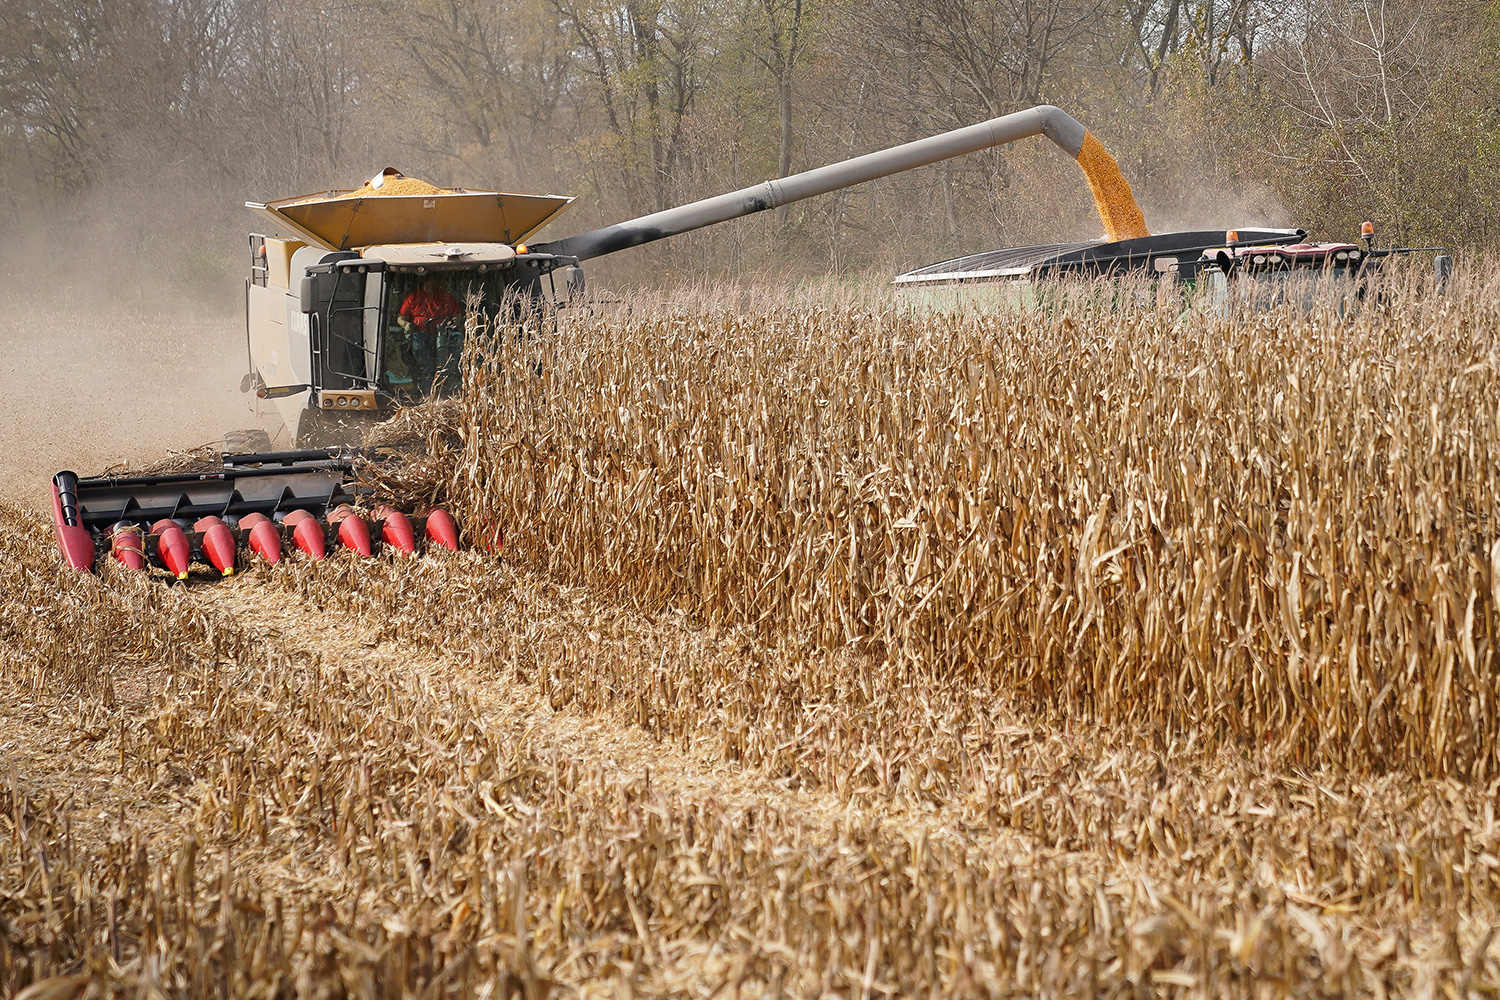 Picture shows a harvester moving down a line of corn and shooting the harvested kernels into a truck.